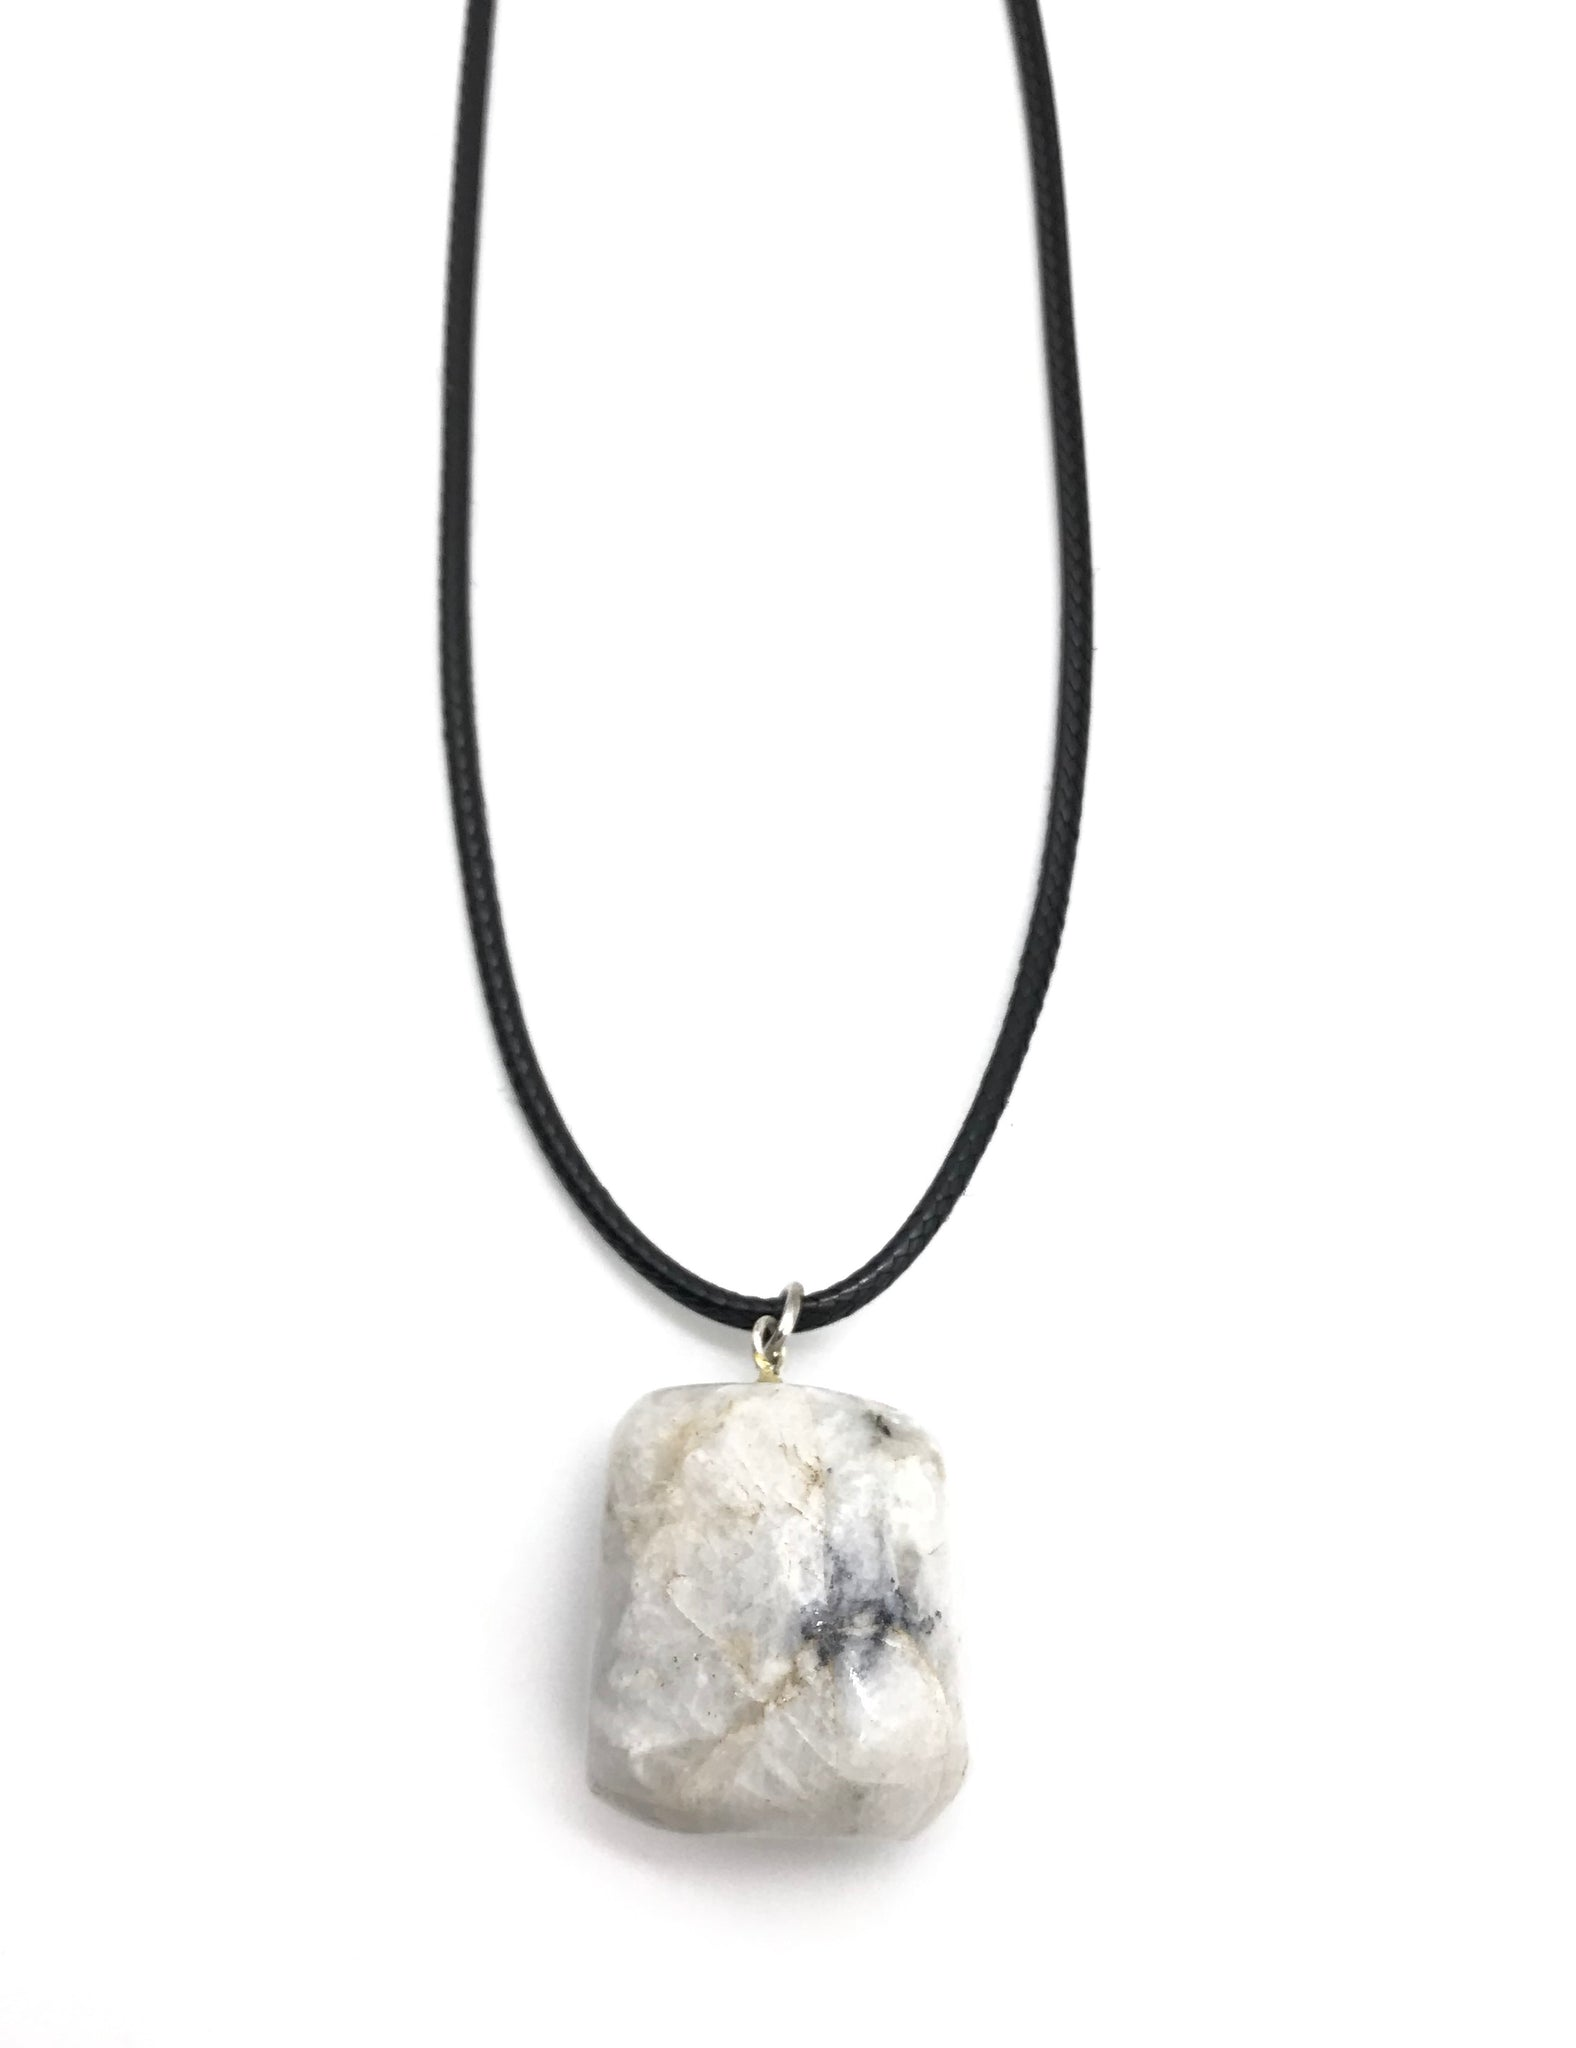 RAW TUMBLED MOONSTONE HYPOALLERGENIC CORD NECKLACE 16 to 28 INCHES UNISEX